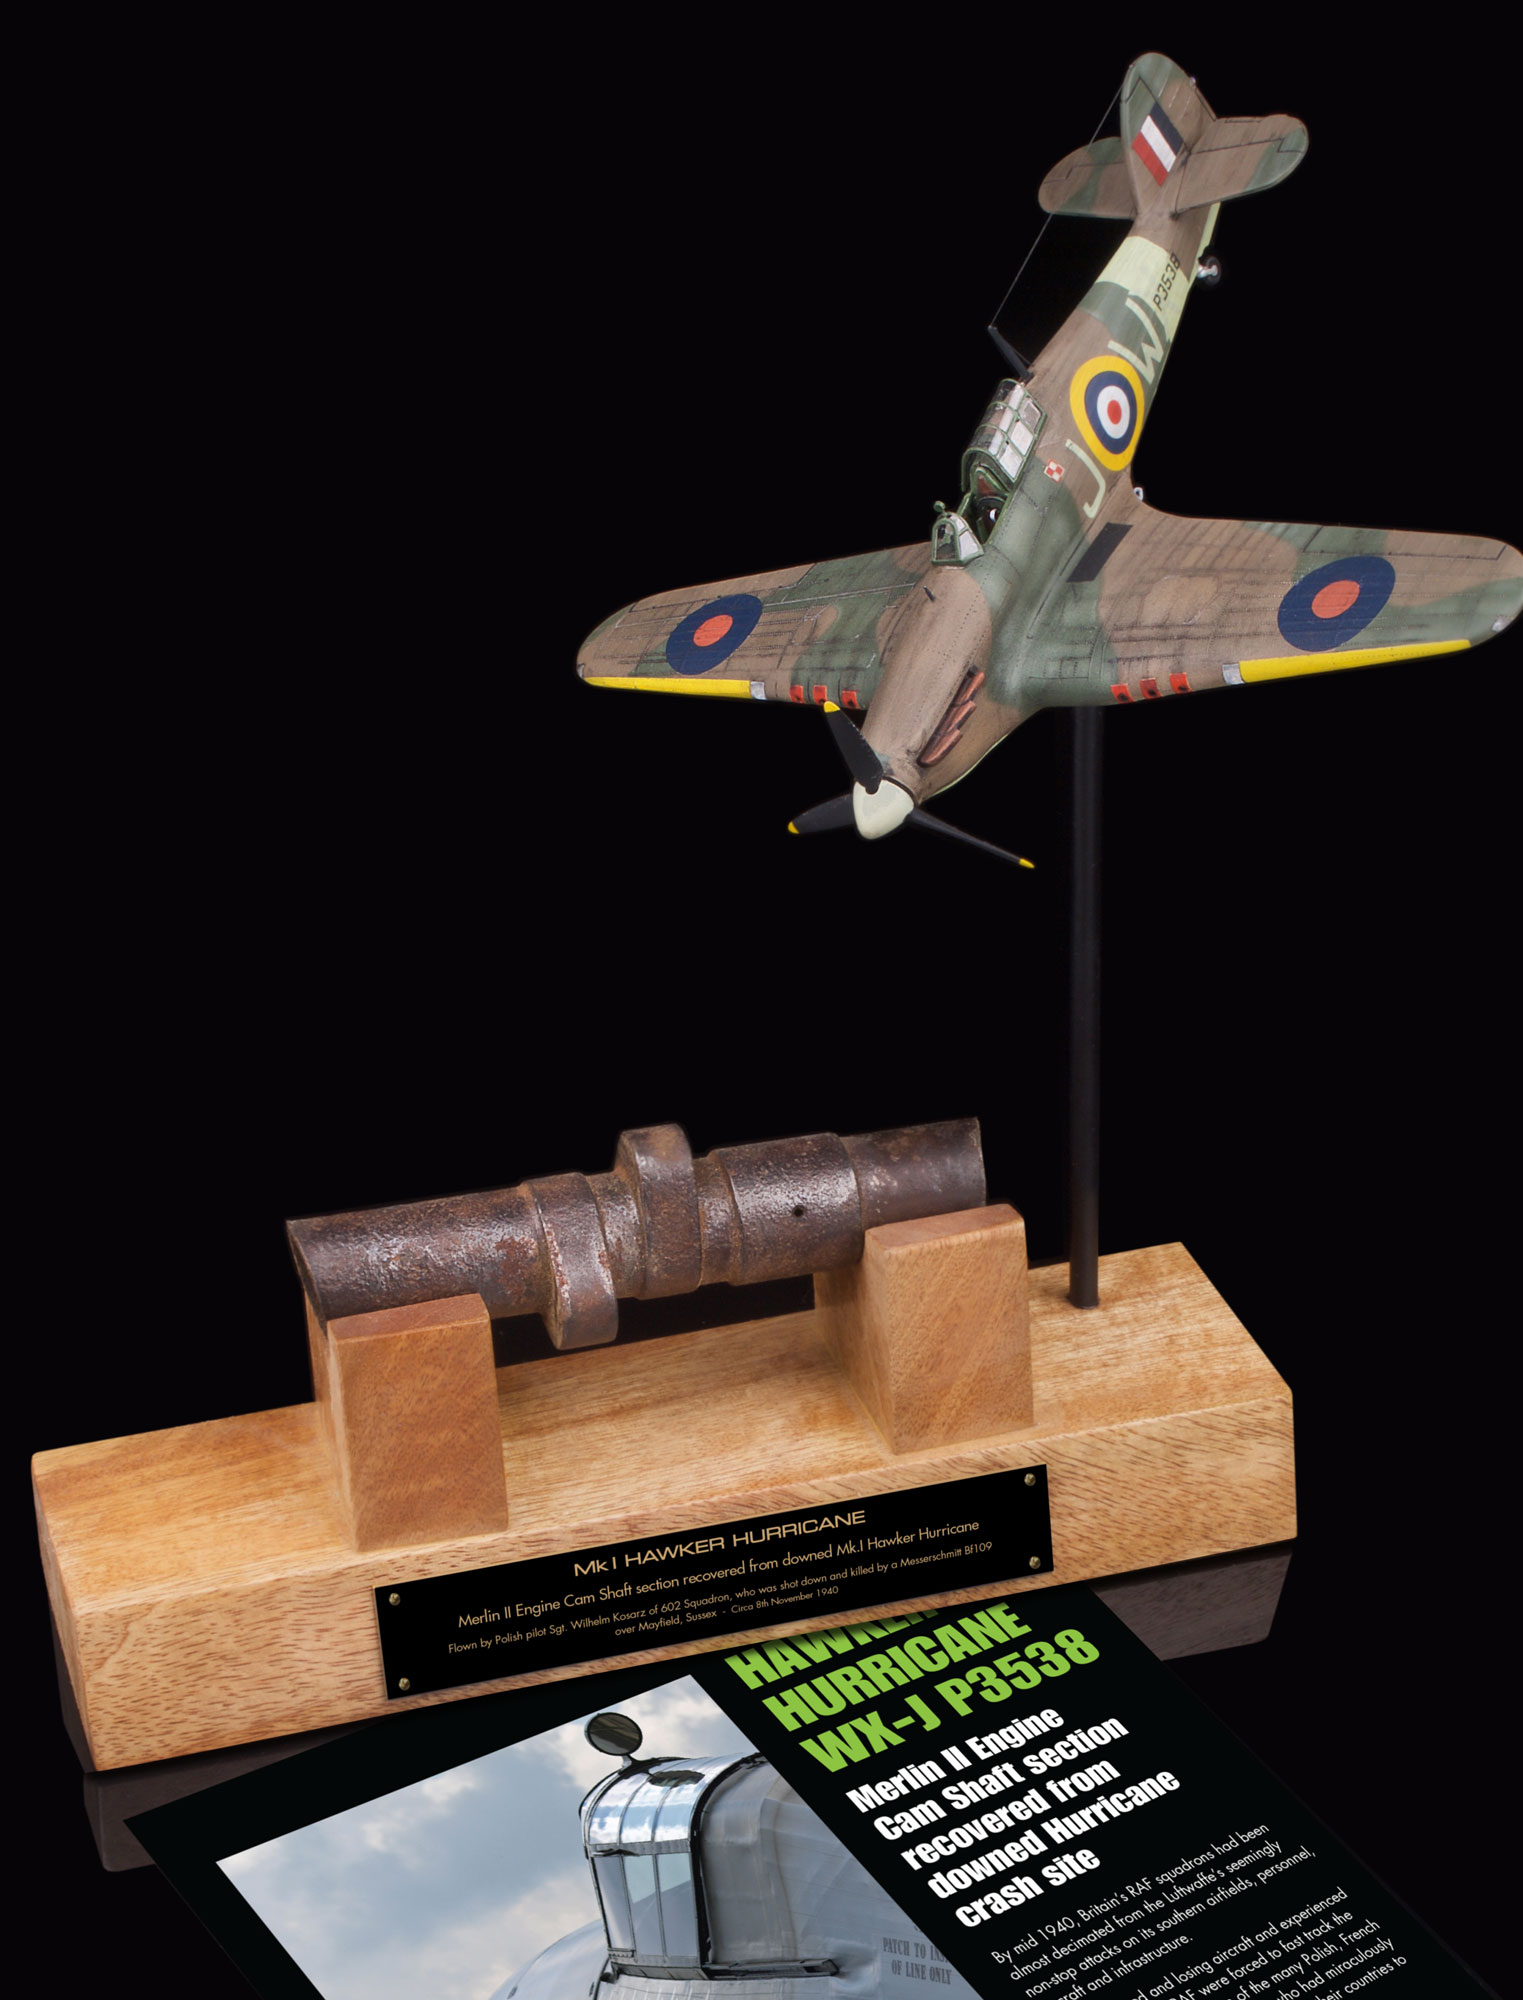 MERLIN II CAM SHAFT SECTION RELIC FROM DOWNED BATTLE OF BRITAIN POLISH HAWKER HURRICANE P3538 WX-J